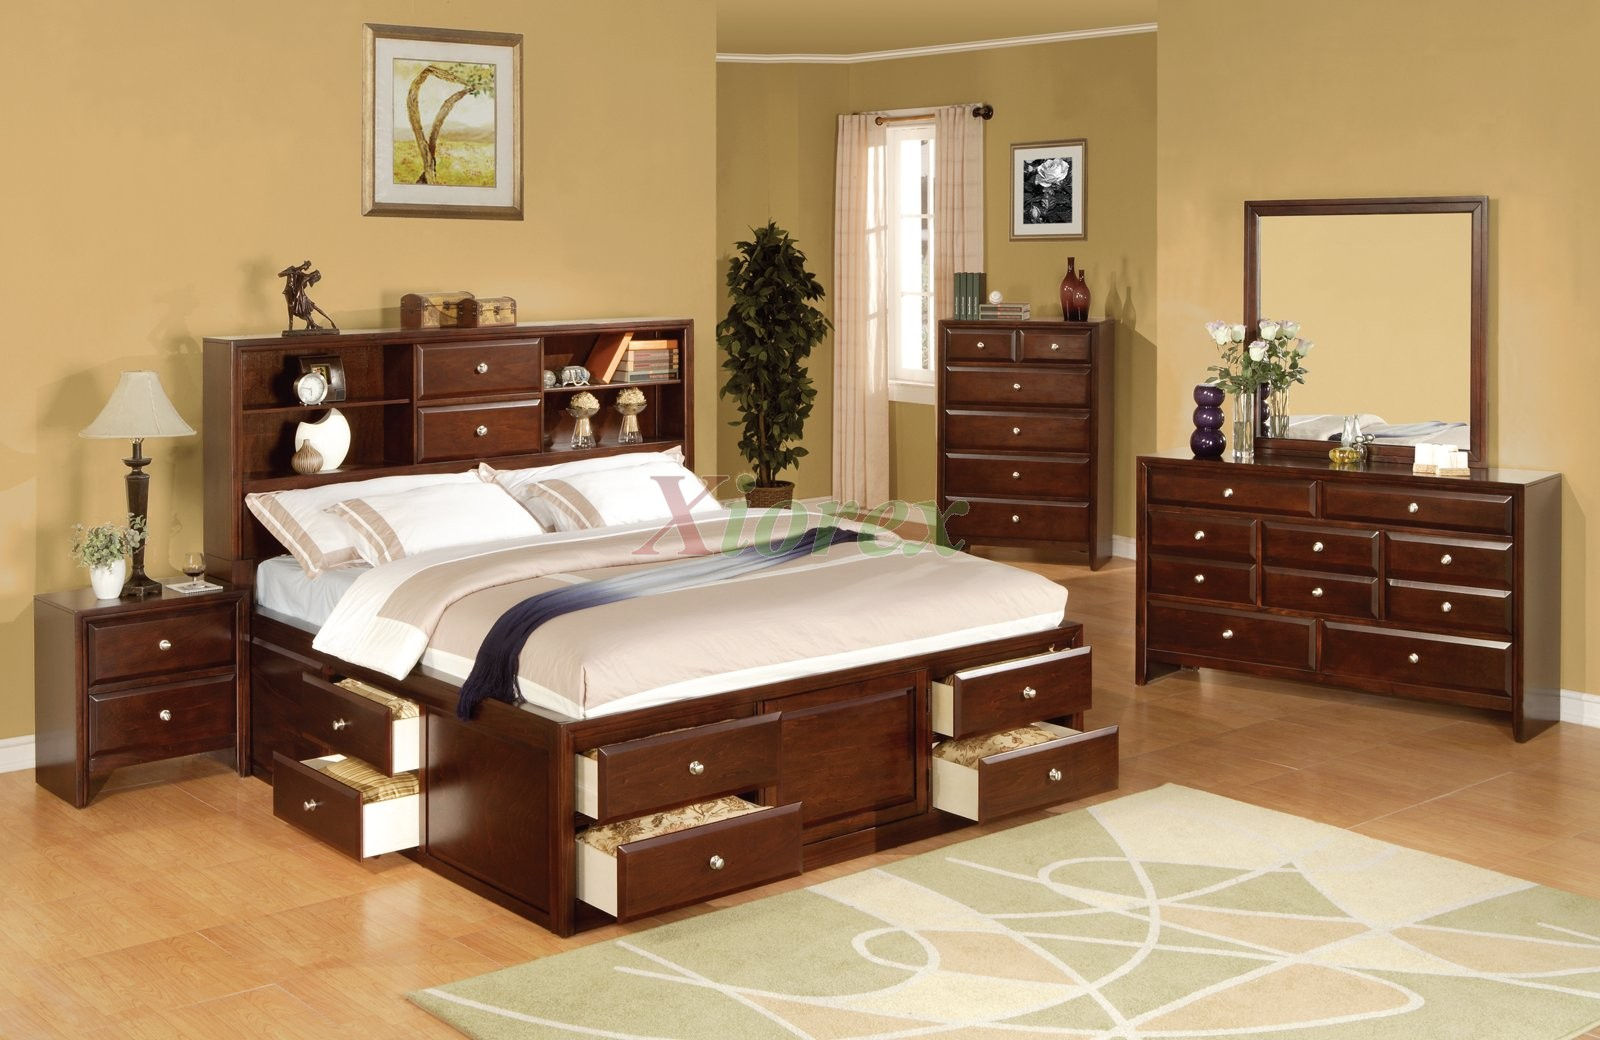 Bedroom furniture storage -